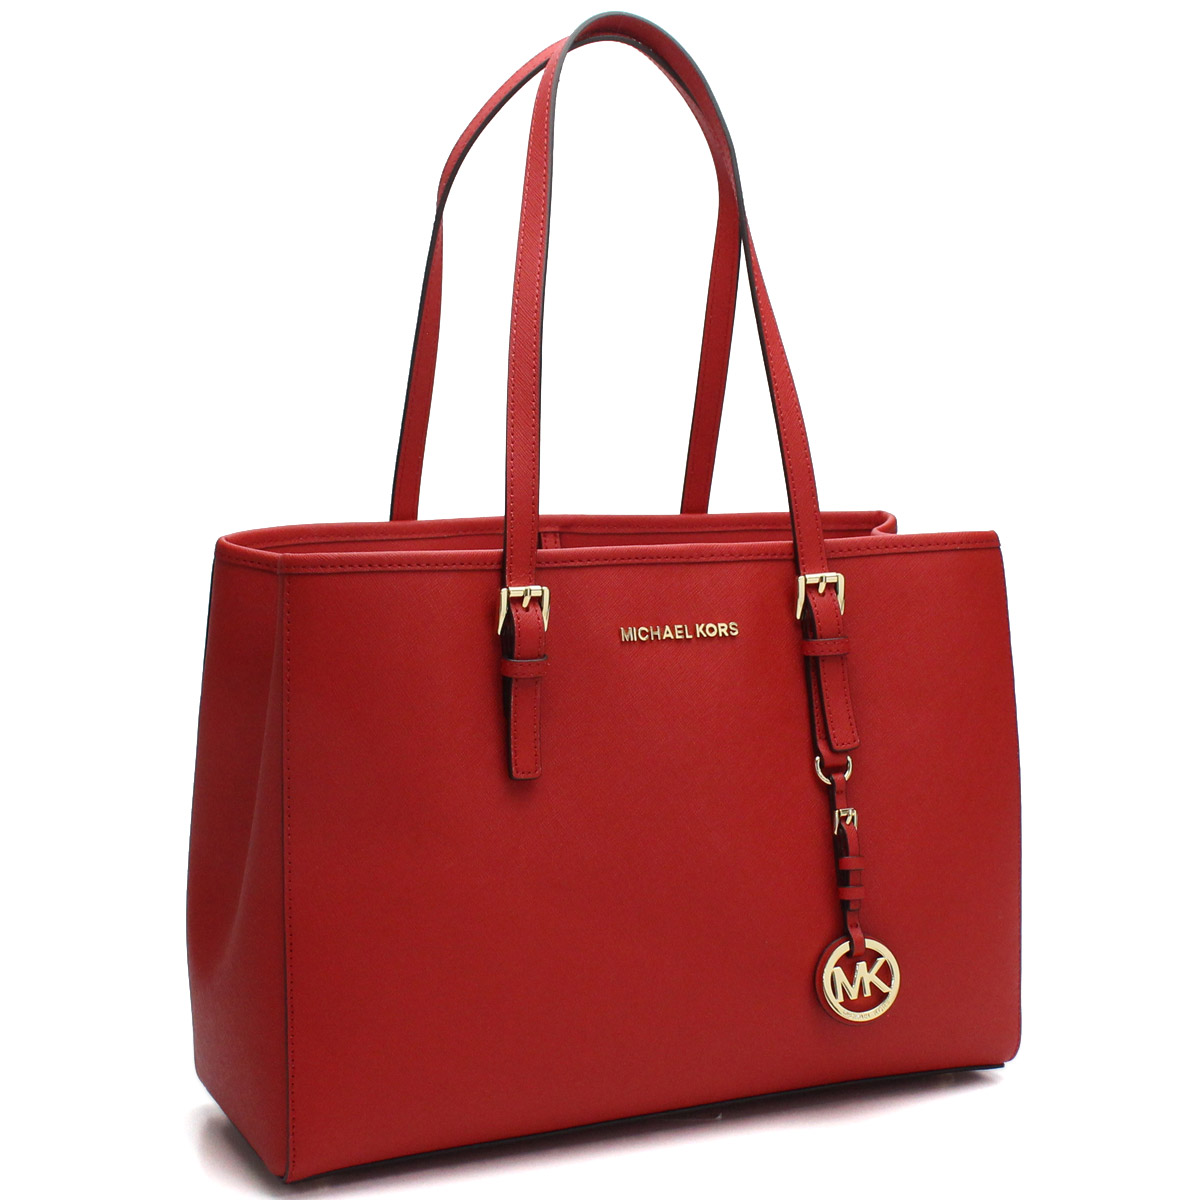 9b3f63a3880055 Bighit The total brand wholesale: Michael Kors (MICHAEL KORS) JET SET  TRAVEL jet set travel tote bag 30T3GTVT7L BRIGHT RED red system | Rakuten  Global ...